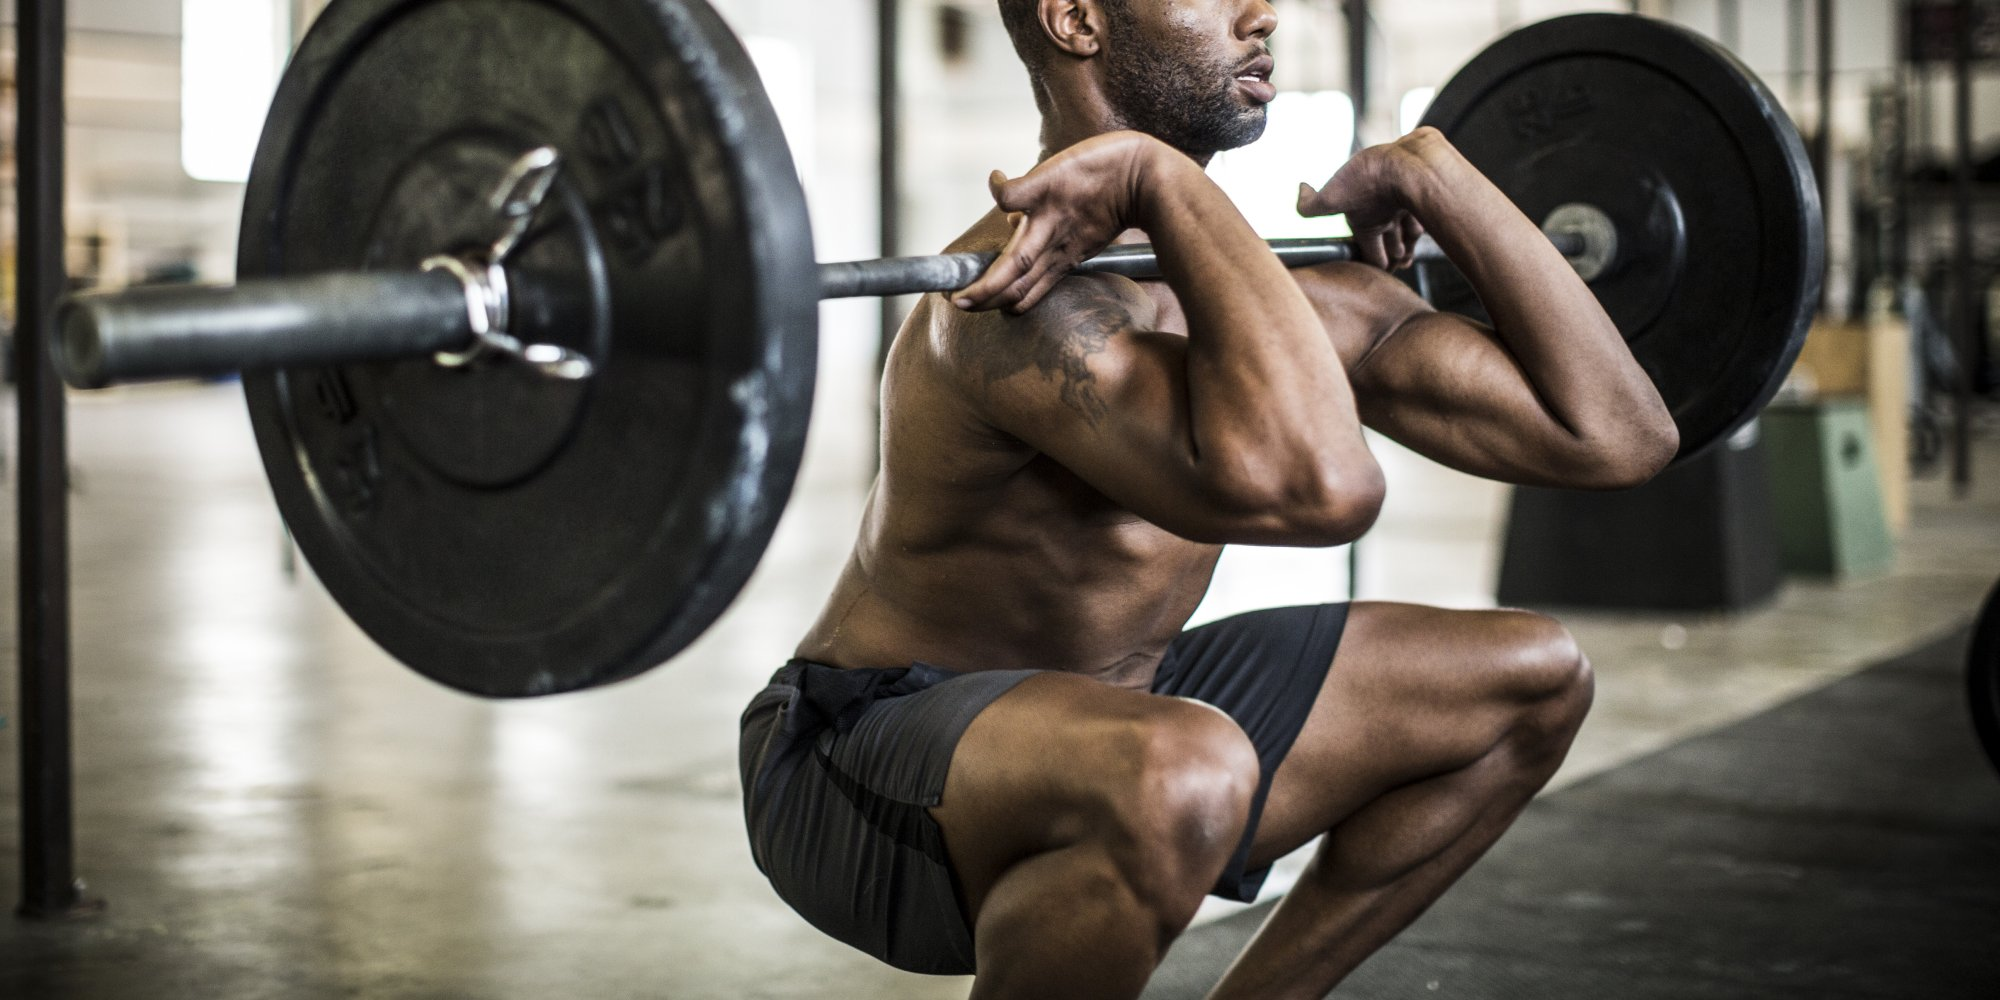 man doing a barbell squat with tempo training